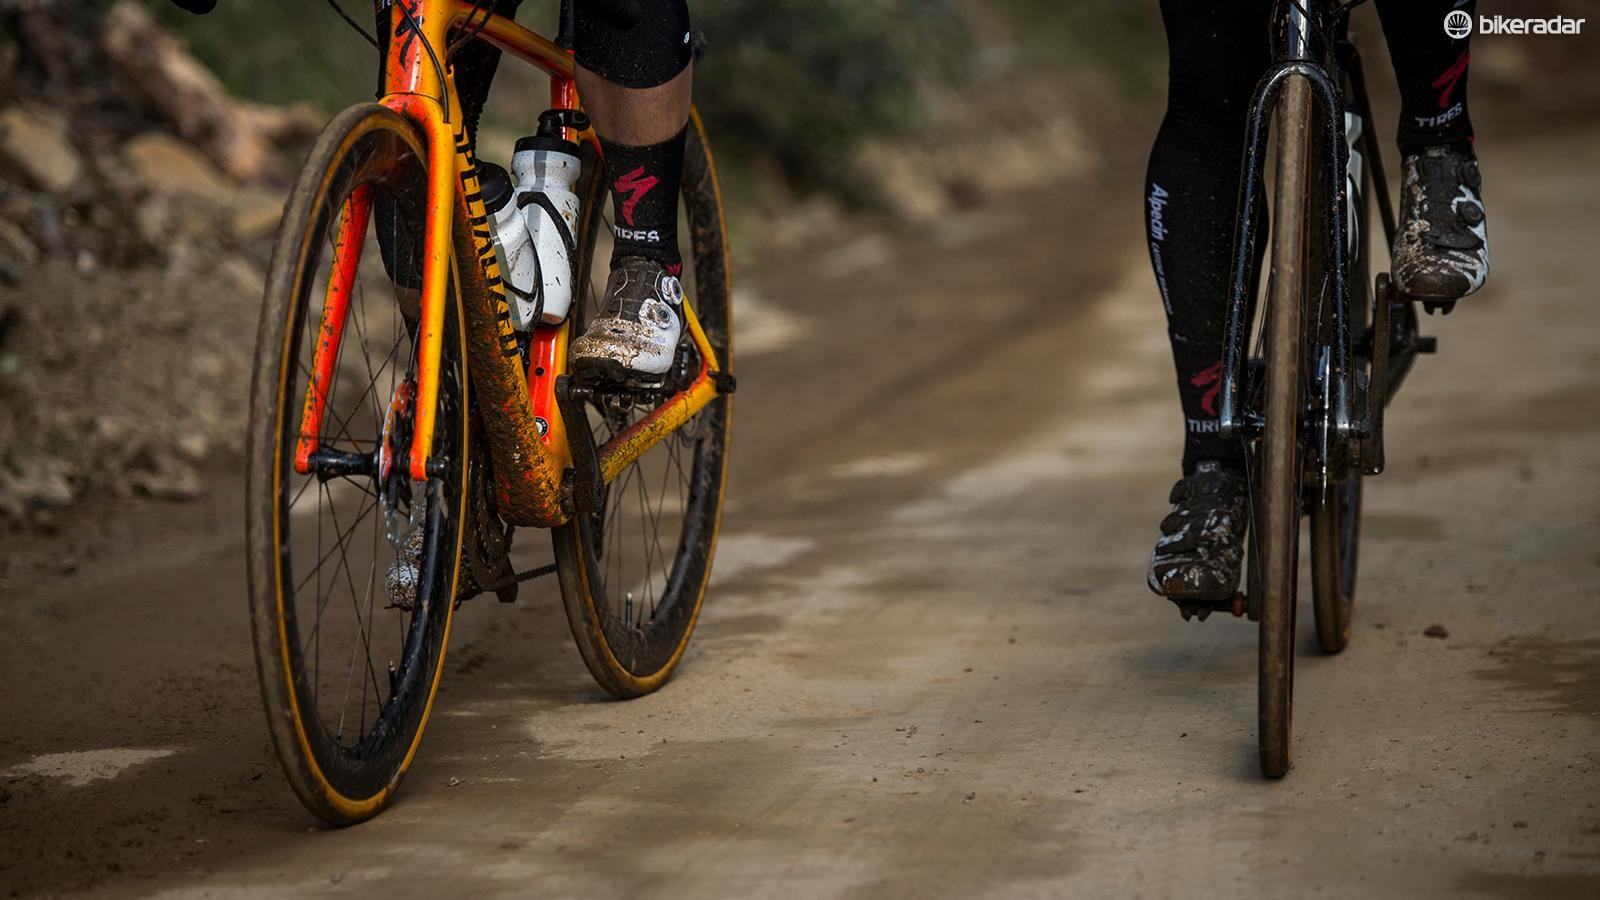 We tested the new CLX 50 Disc against the shallower CLX 32 Disc to get a better impression of Roval's mid-depth wheelset